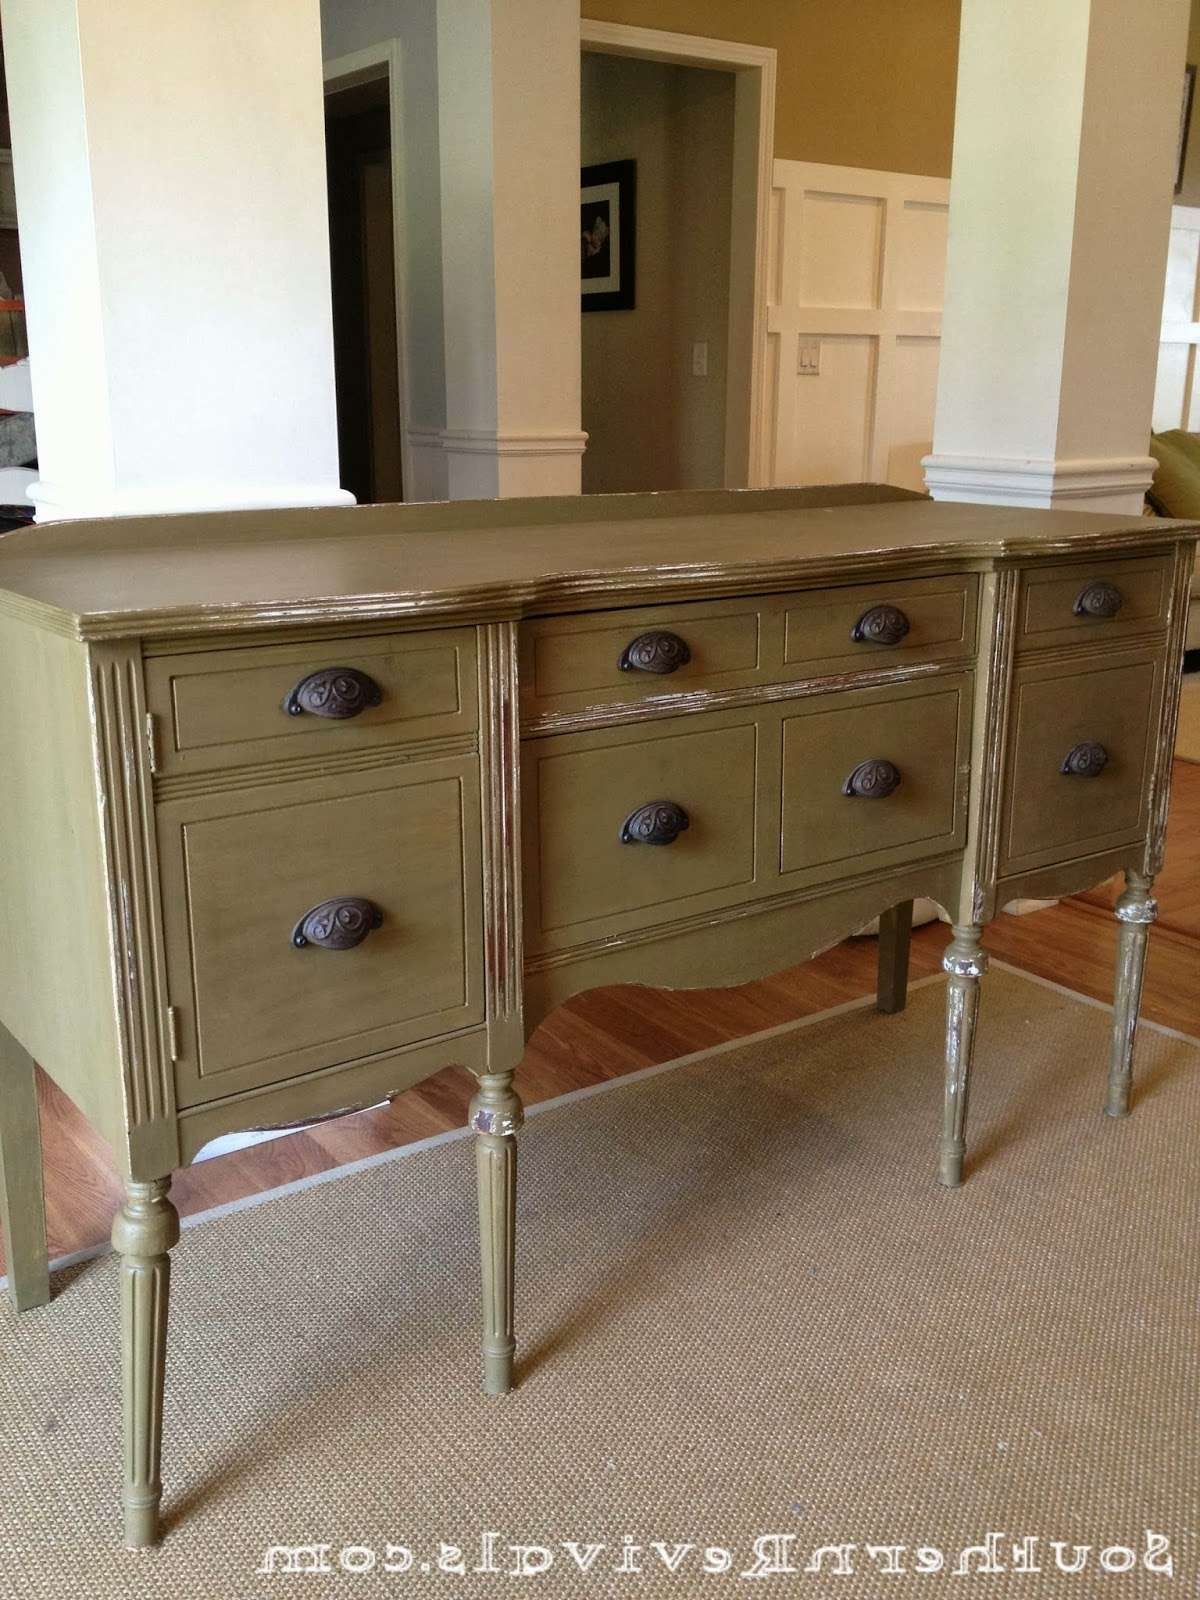 Updating A Vintage Sideboard Buffet With A Pop Of Color – Southern Regarding Vintage Sideboards (View 15 of 20)